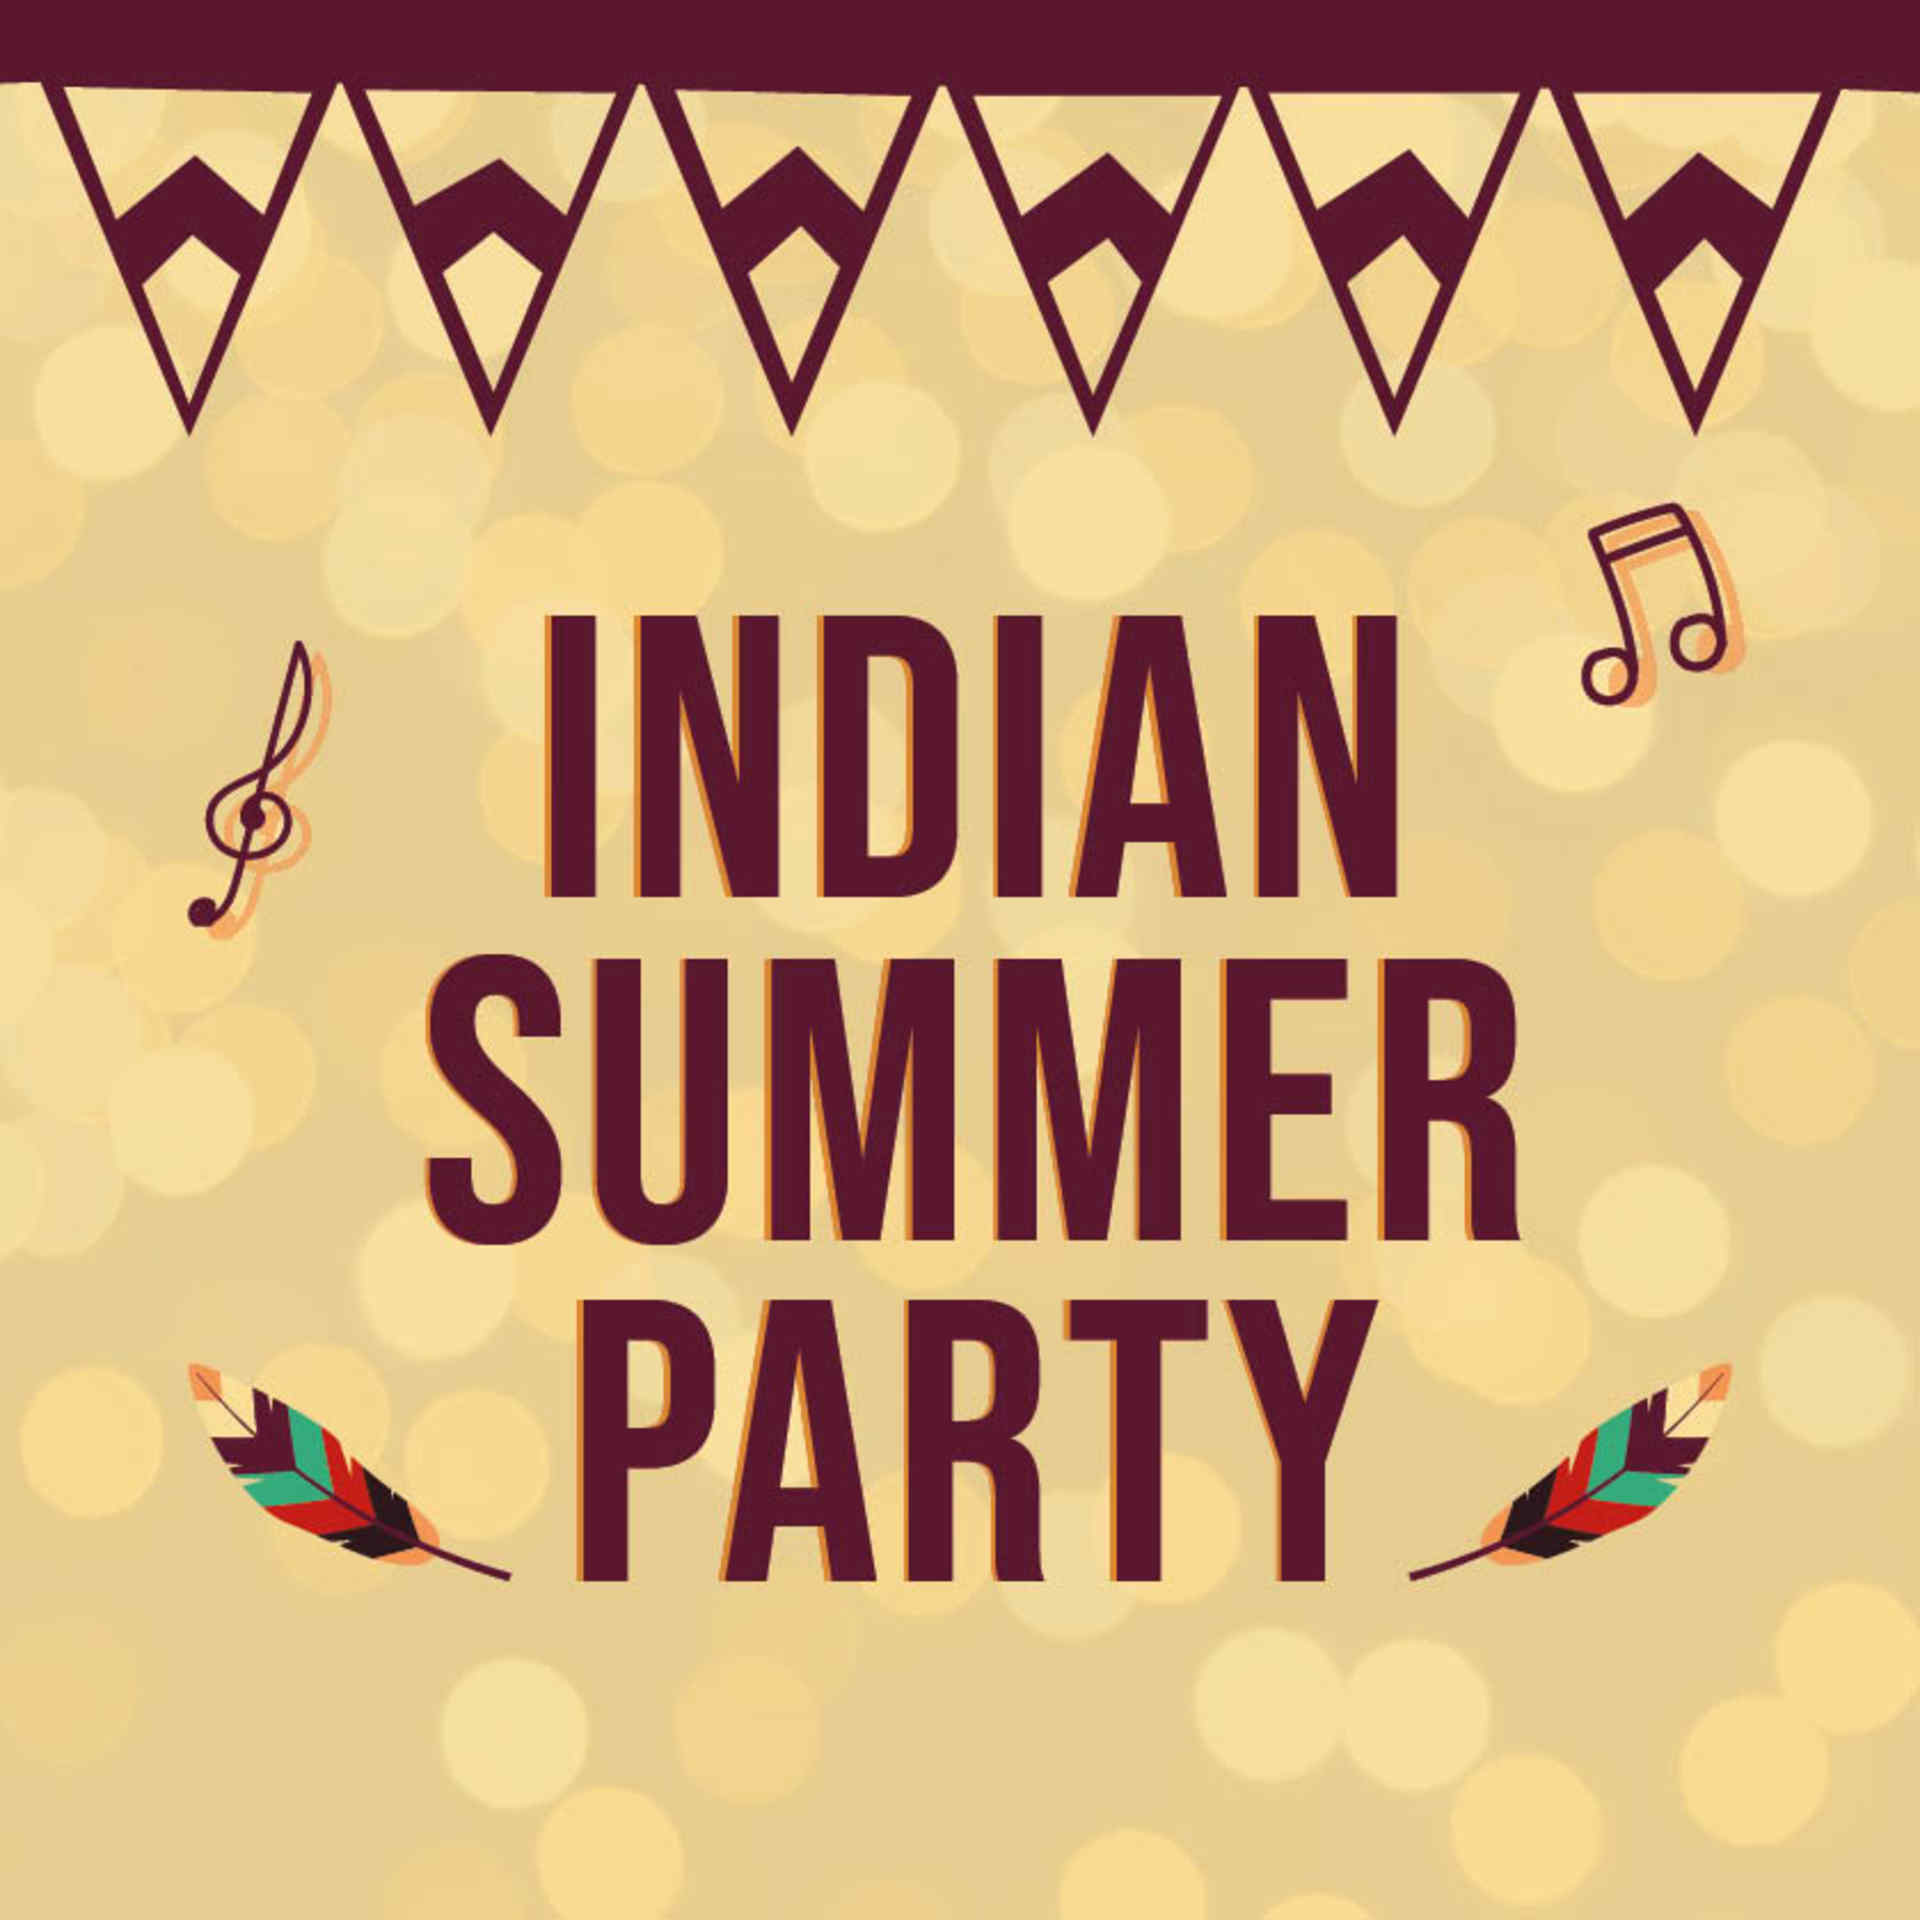 Indian Summer Party